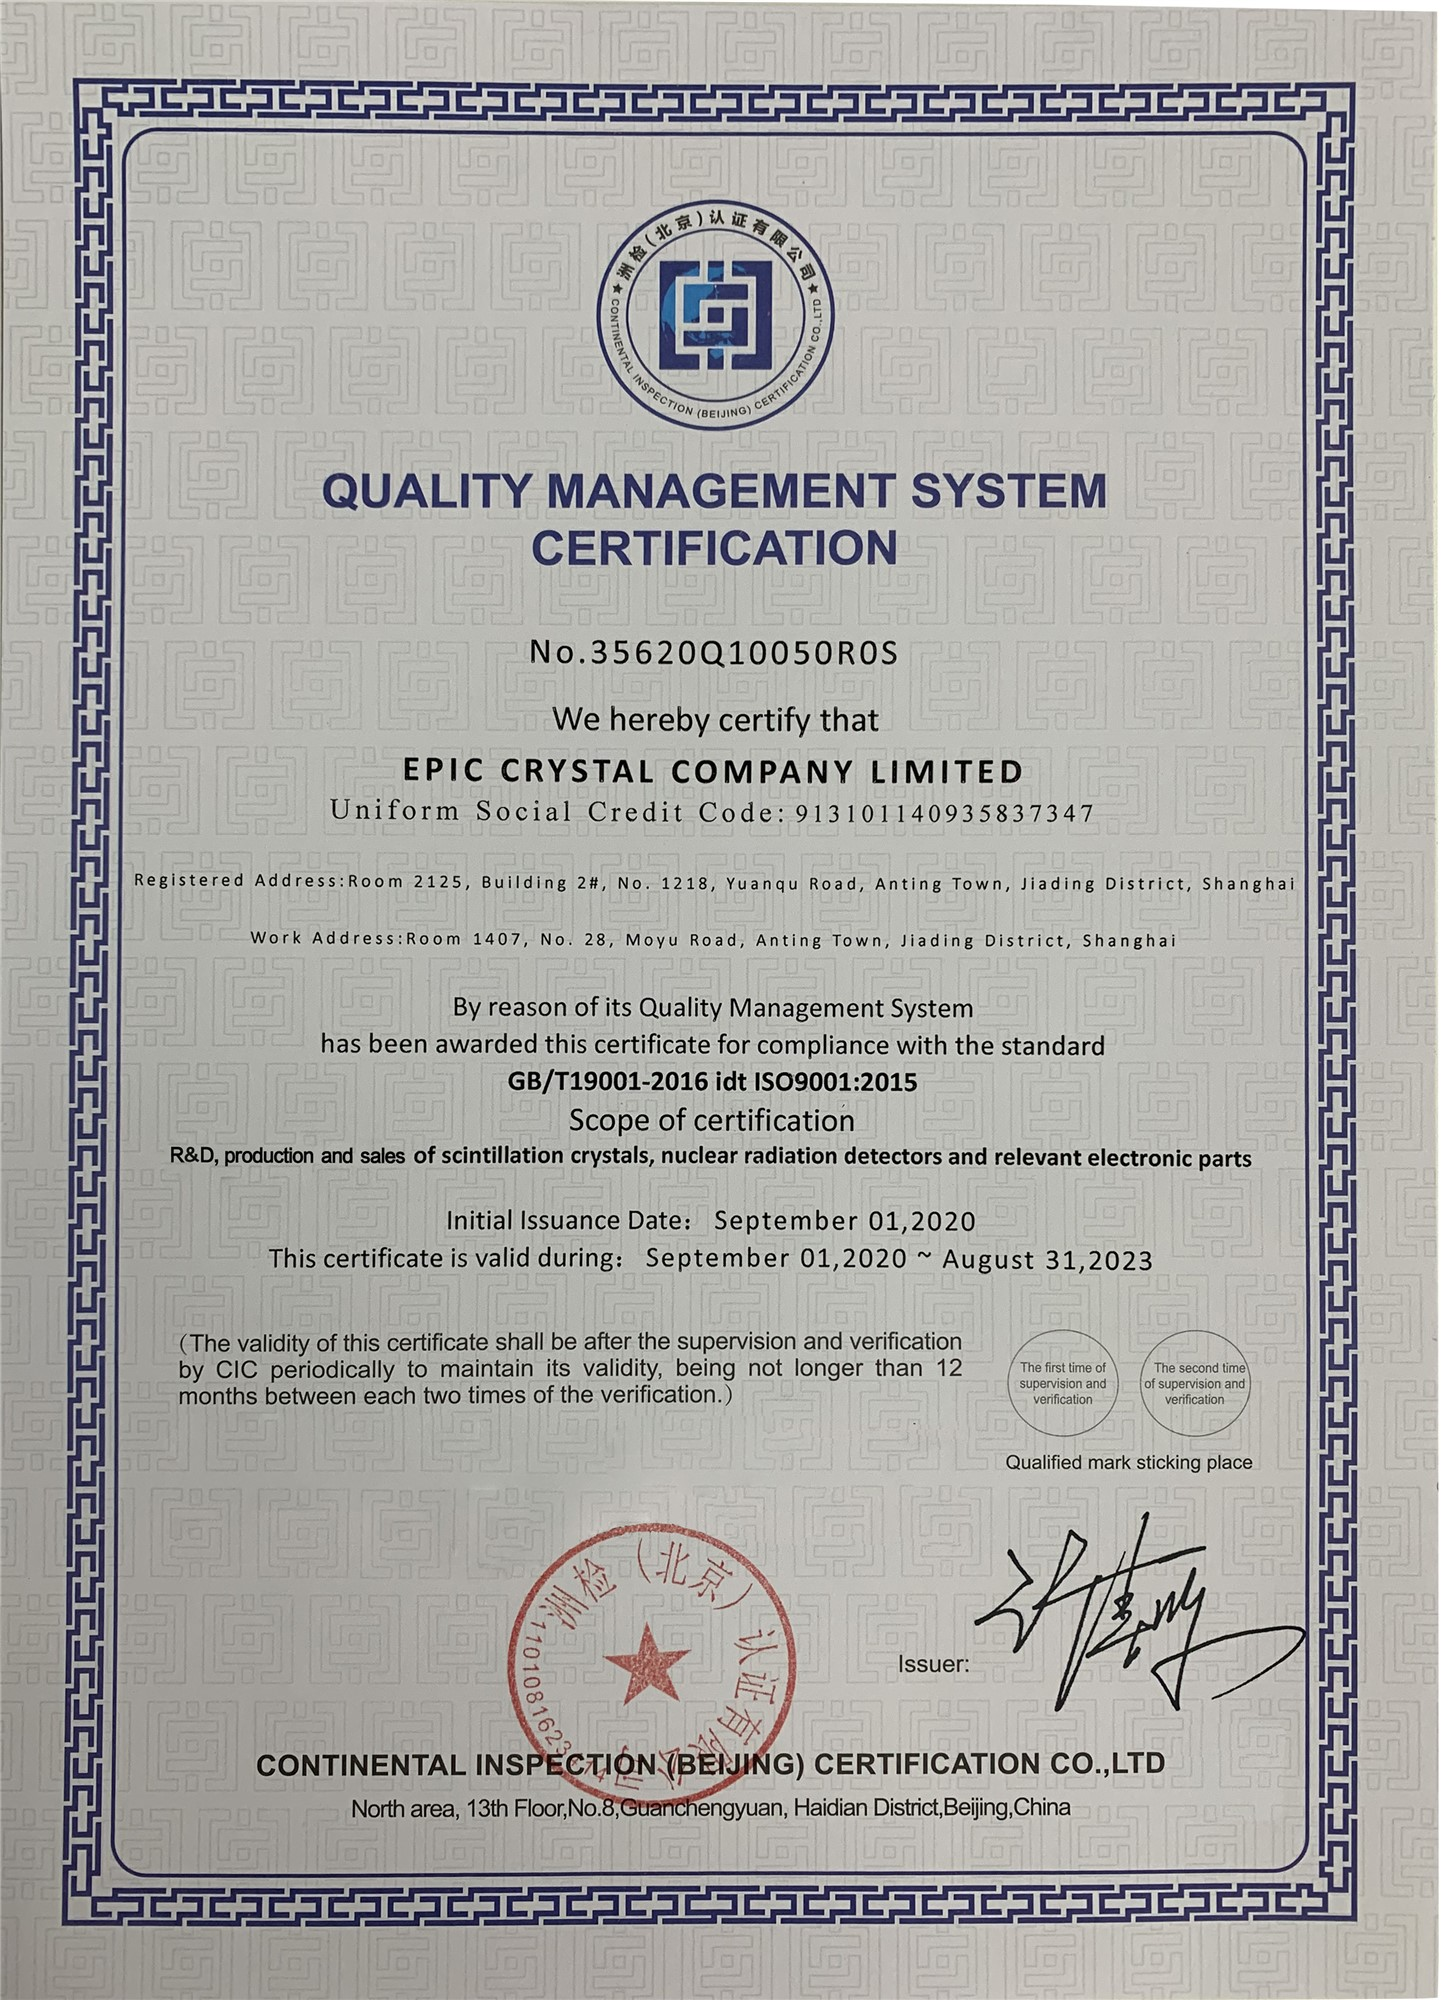 Approved under ISO 9001:2015